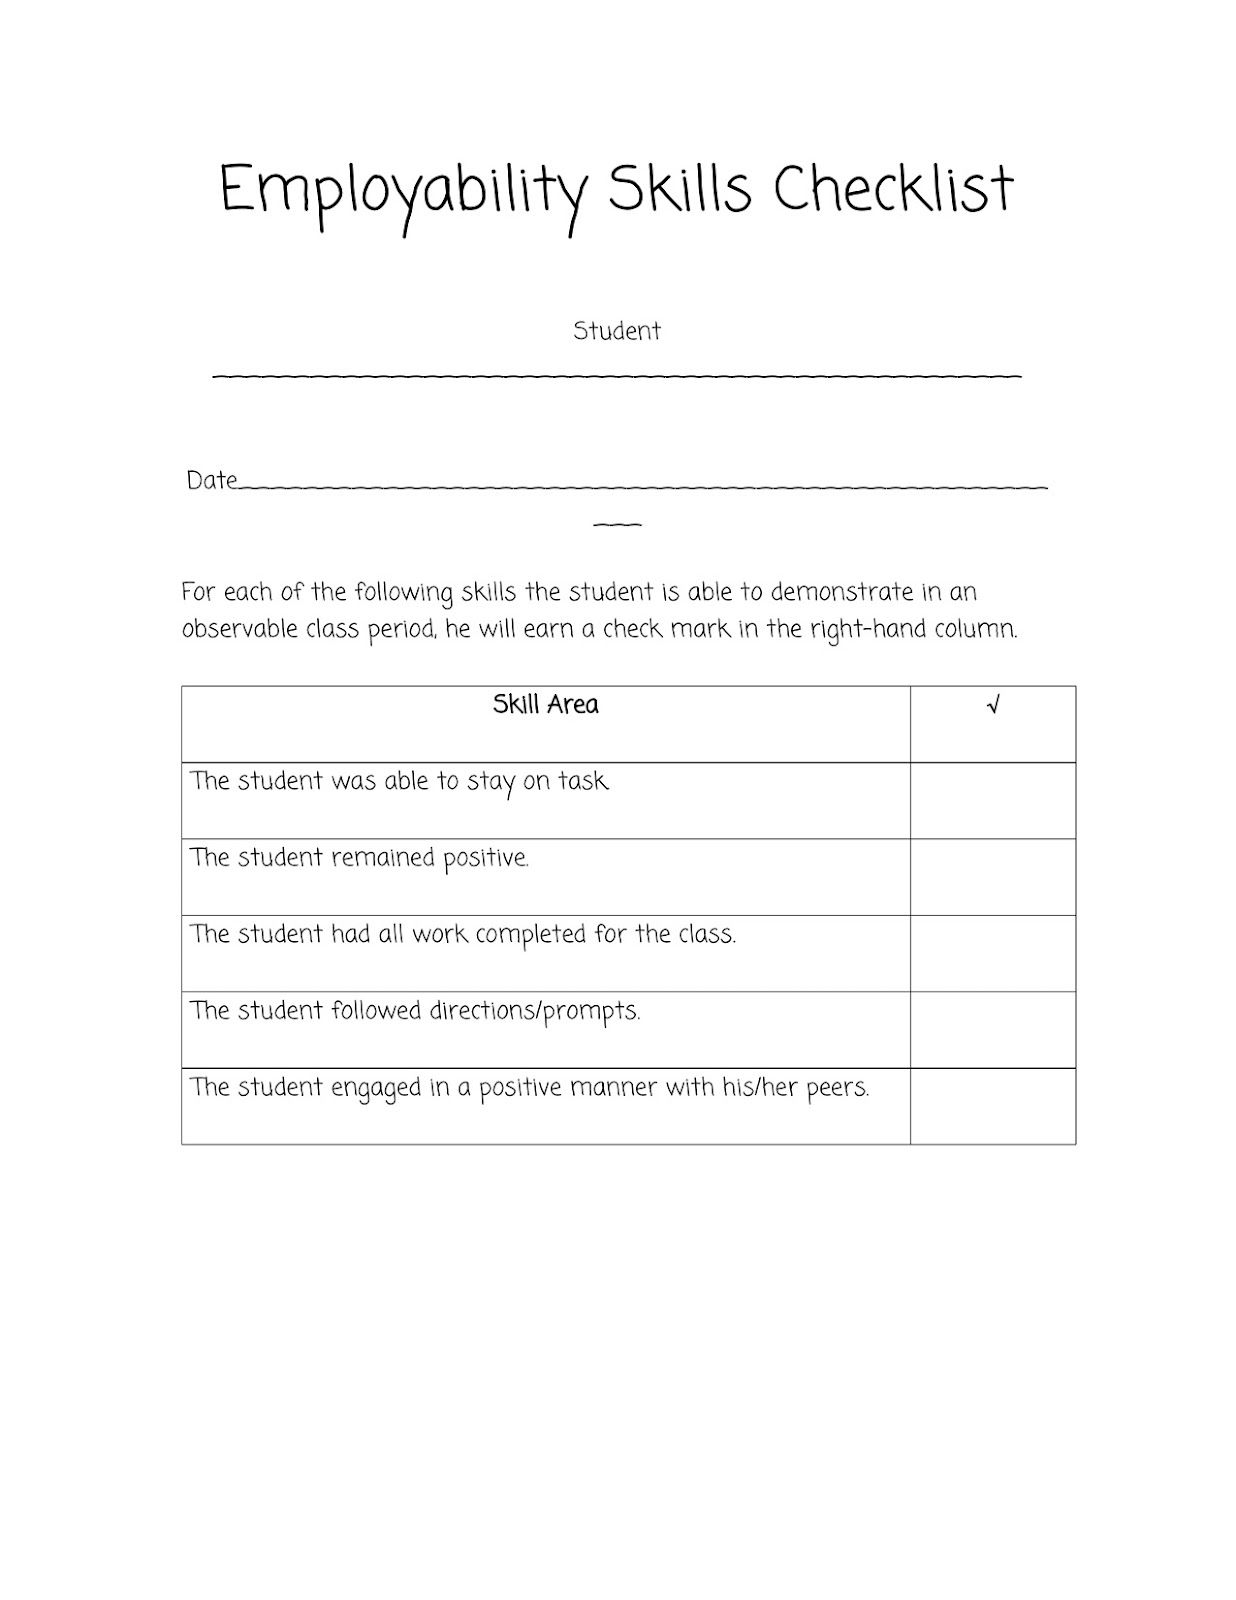 Sped Head Employability Skills Checklist